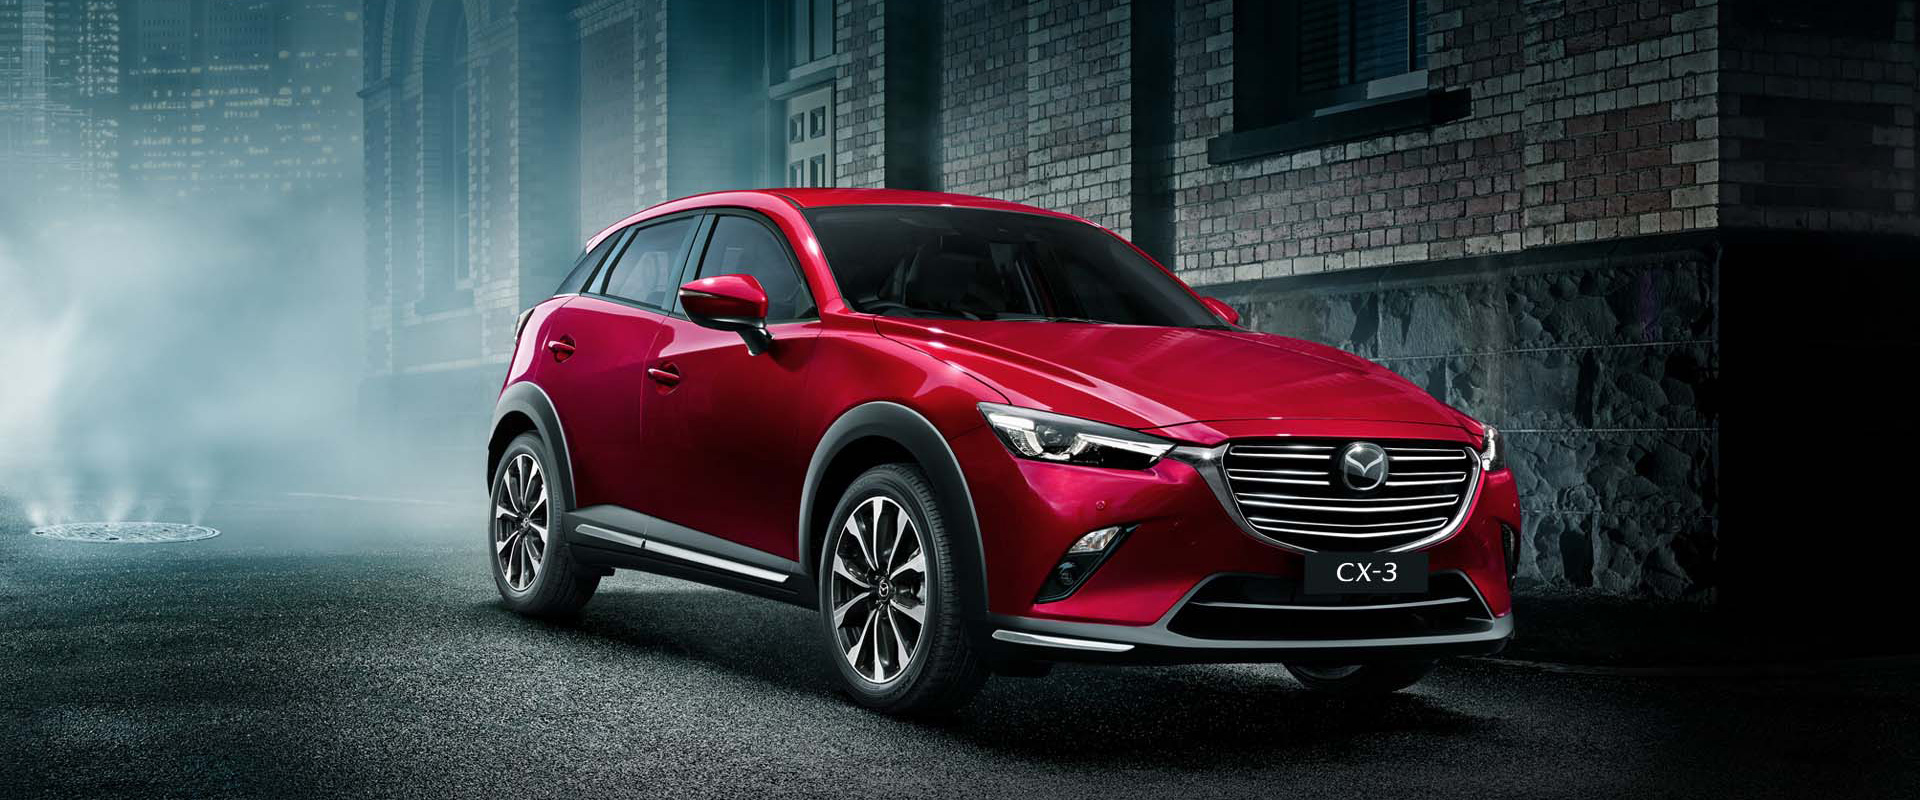 CX-3 READY FOR ANYTHING